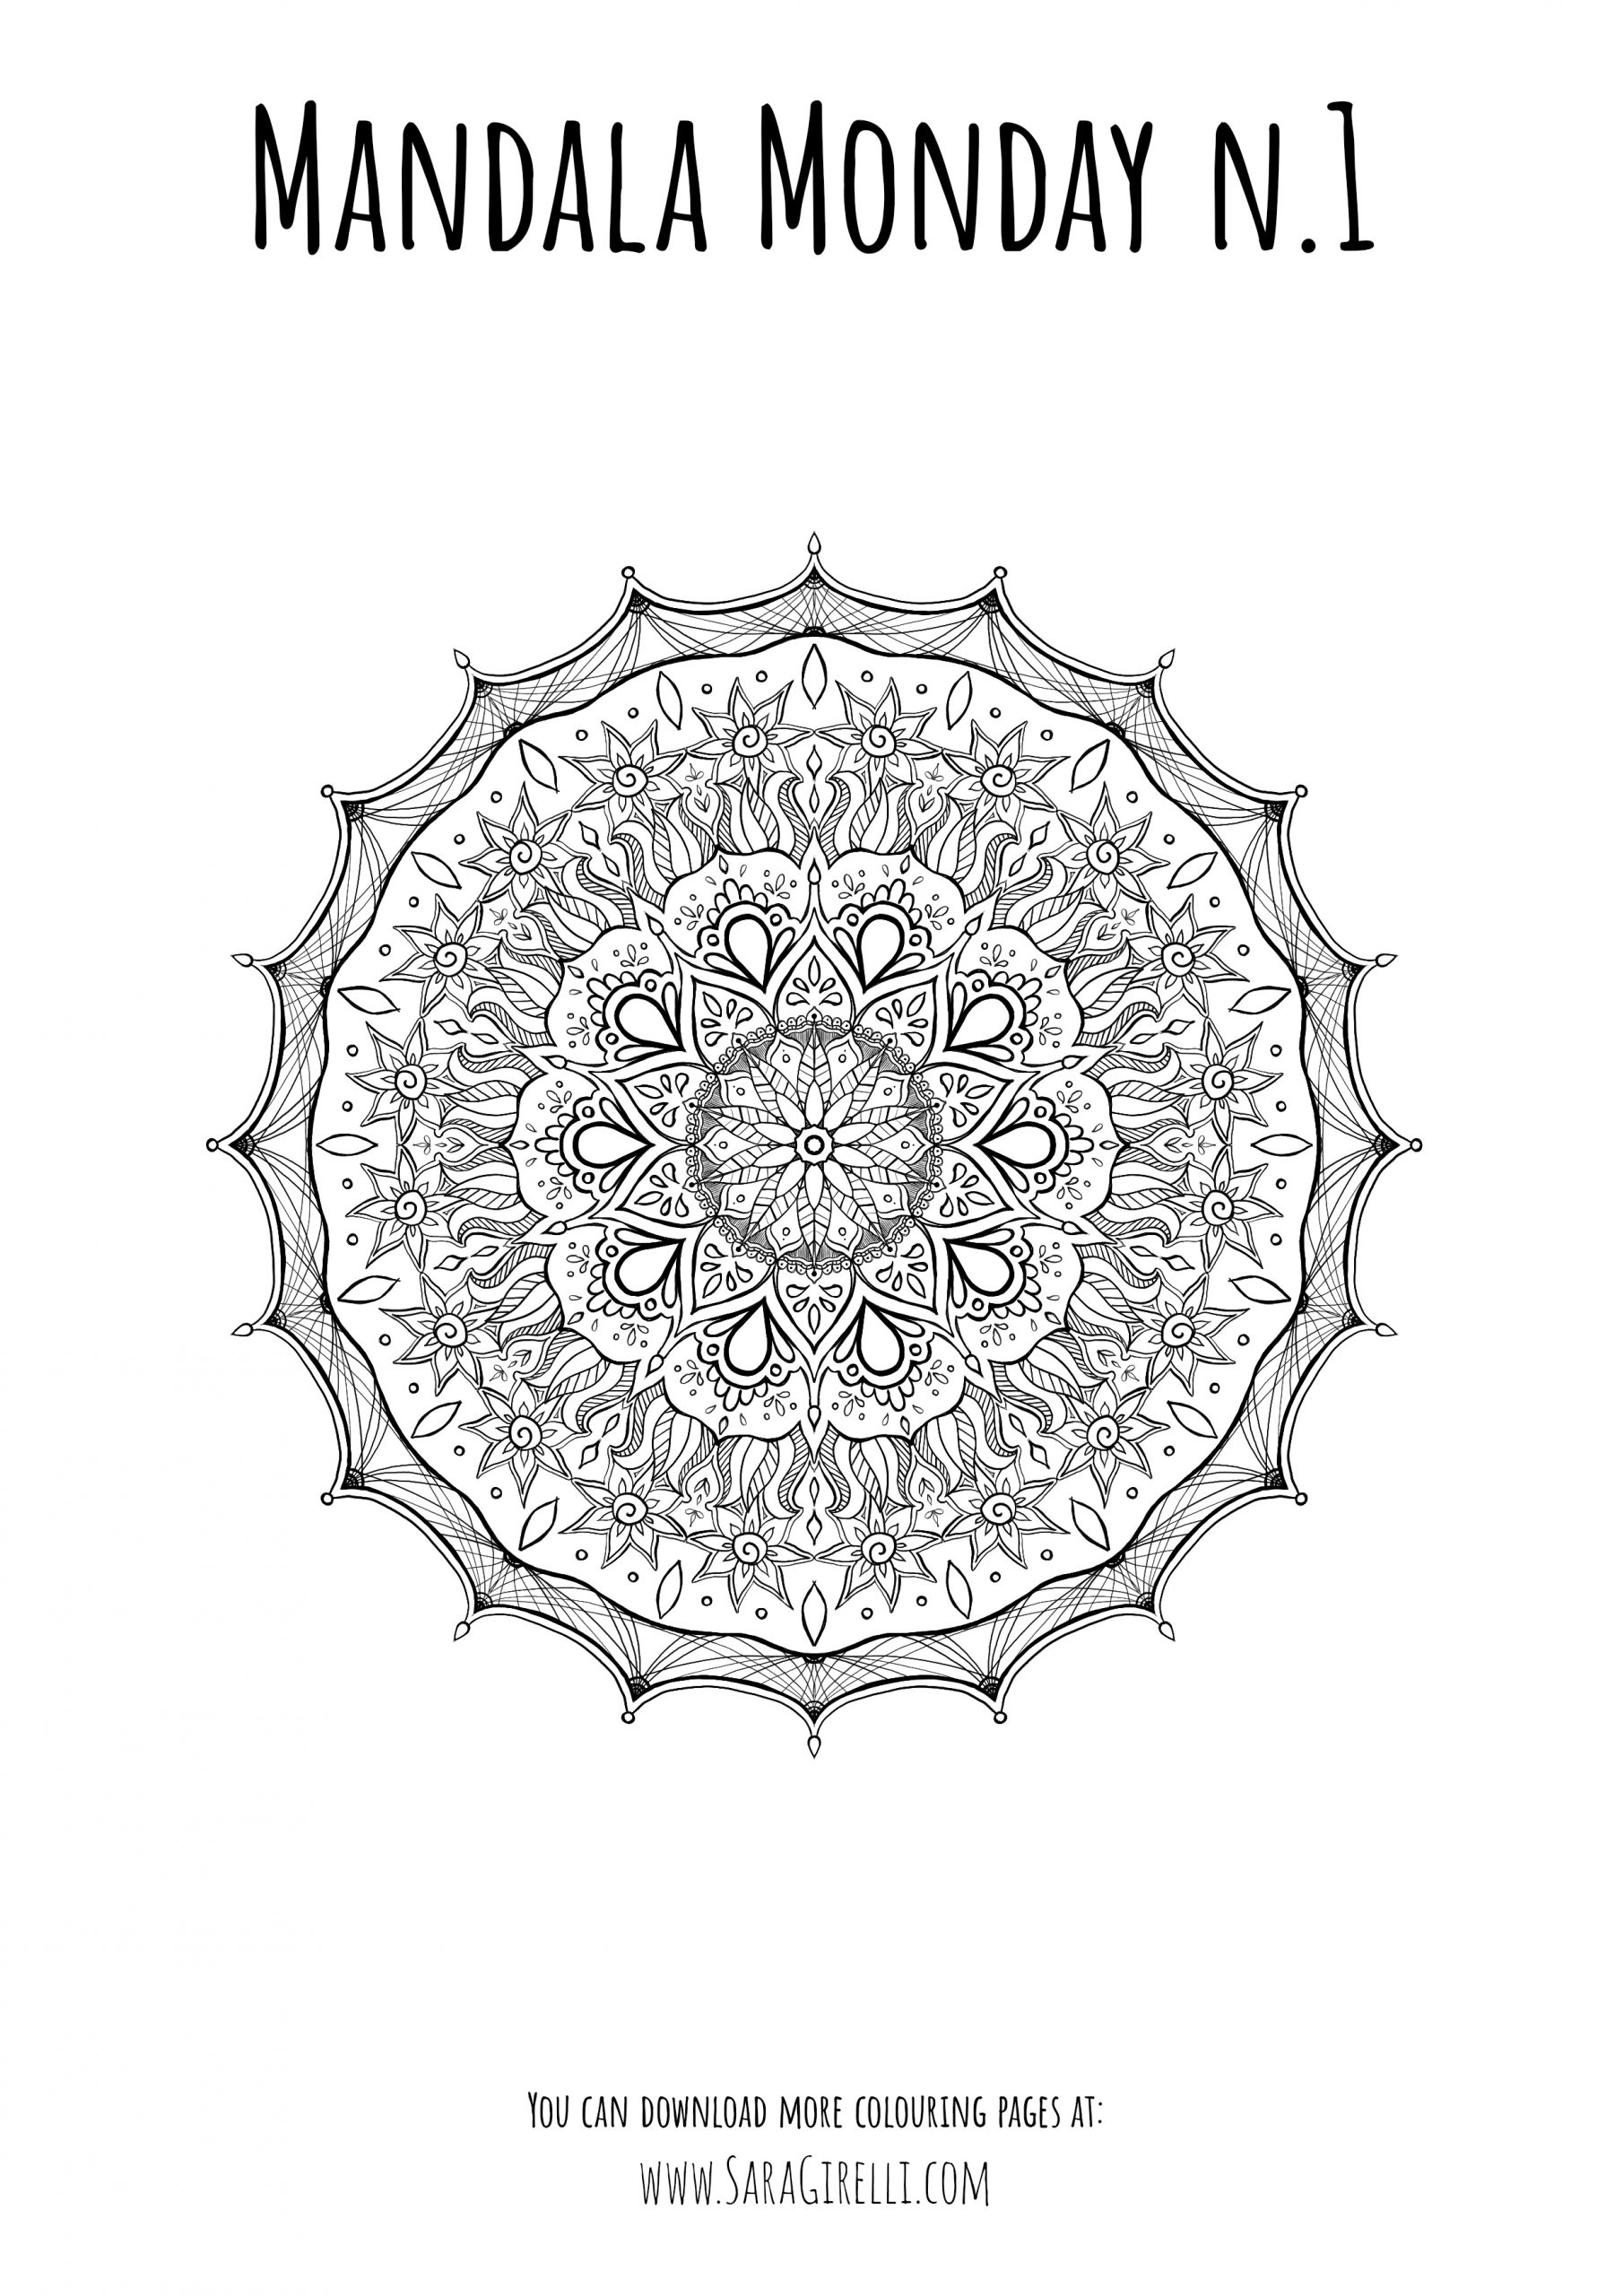 Image of the Monday Mandala number 1